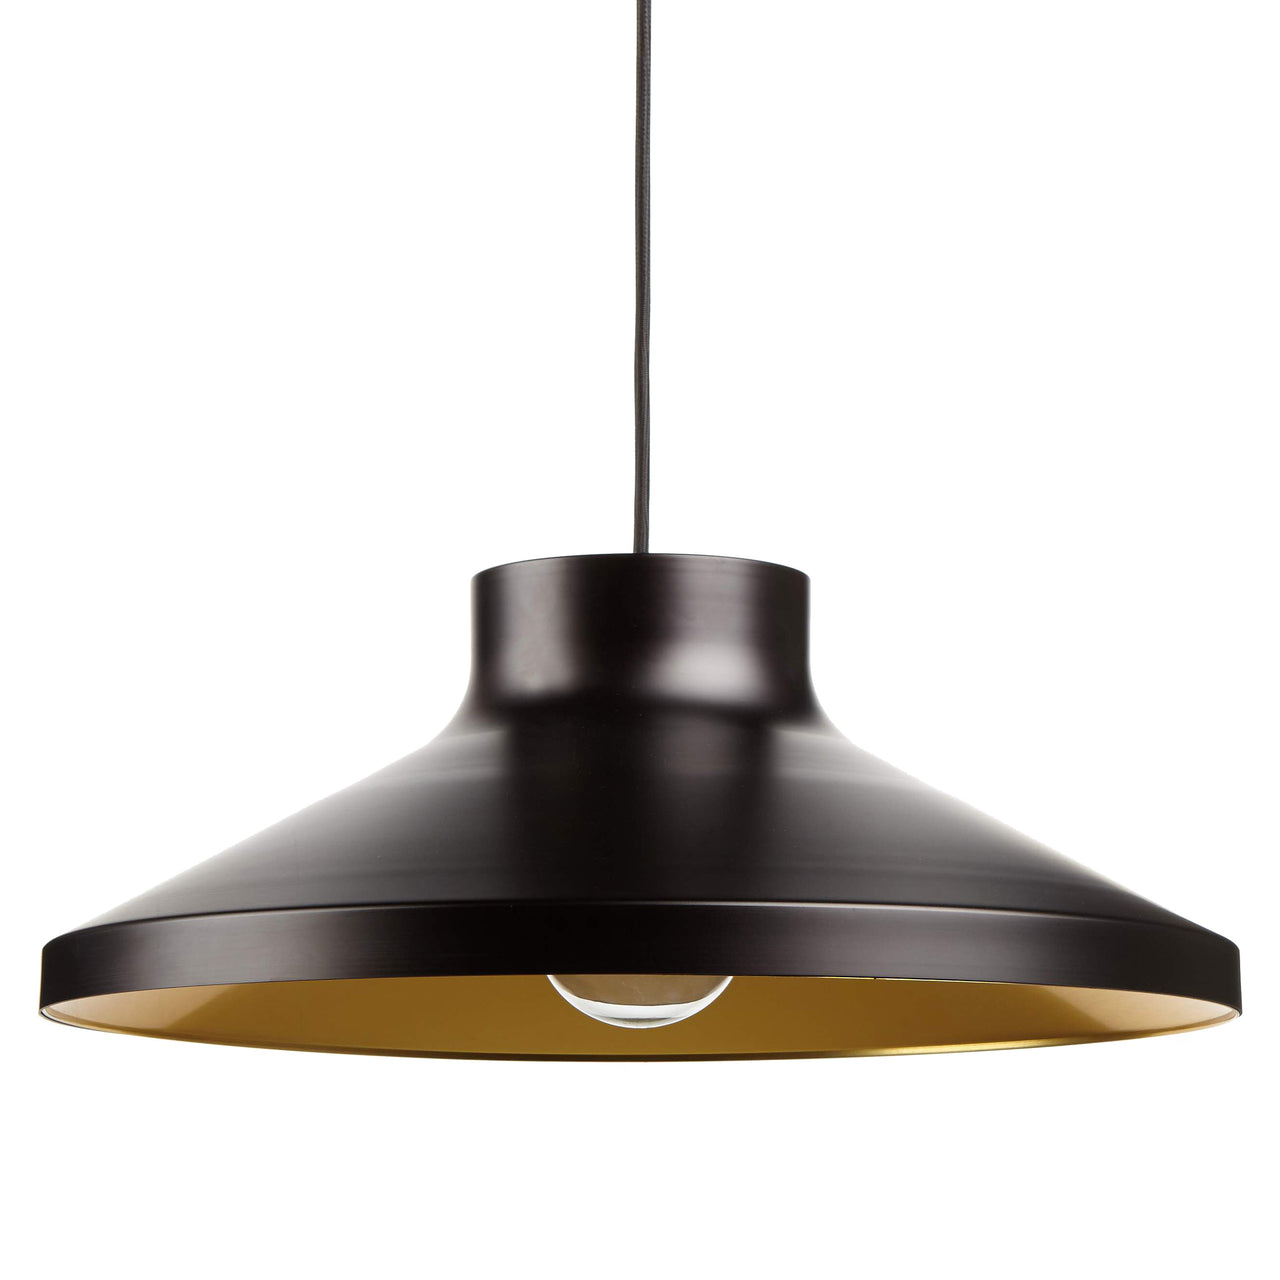 VGP1 Pendant Light: Matte Black + Brass